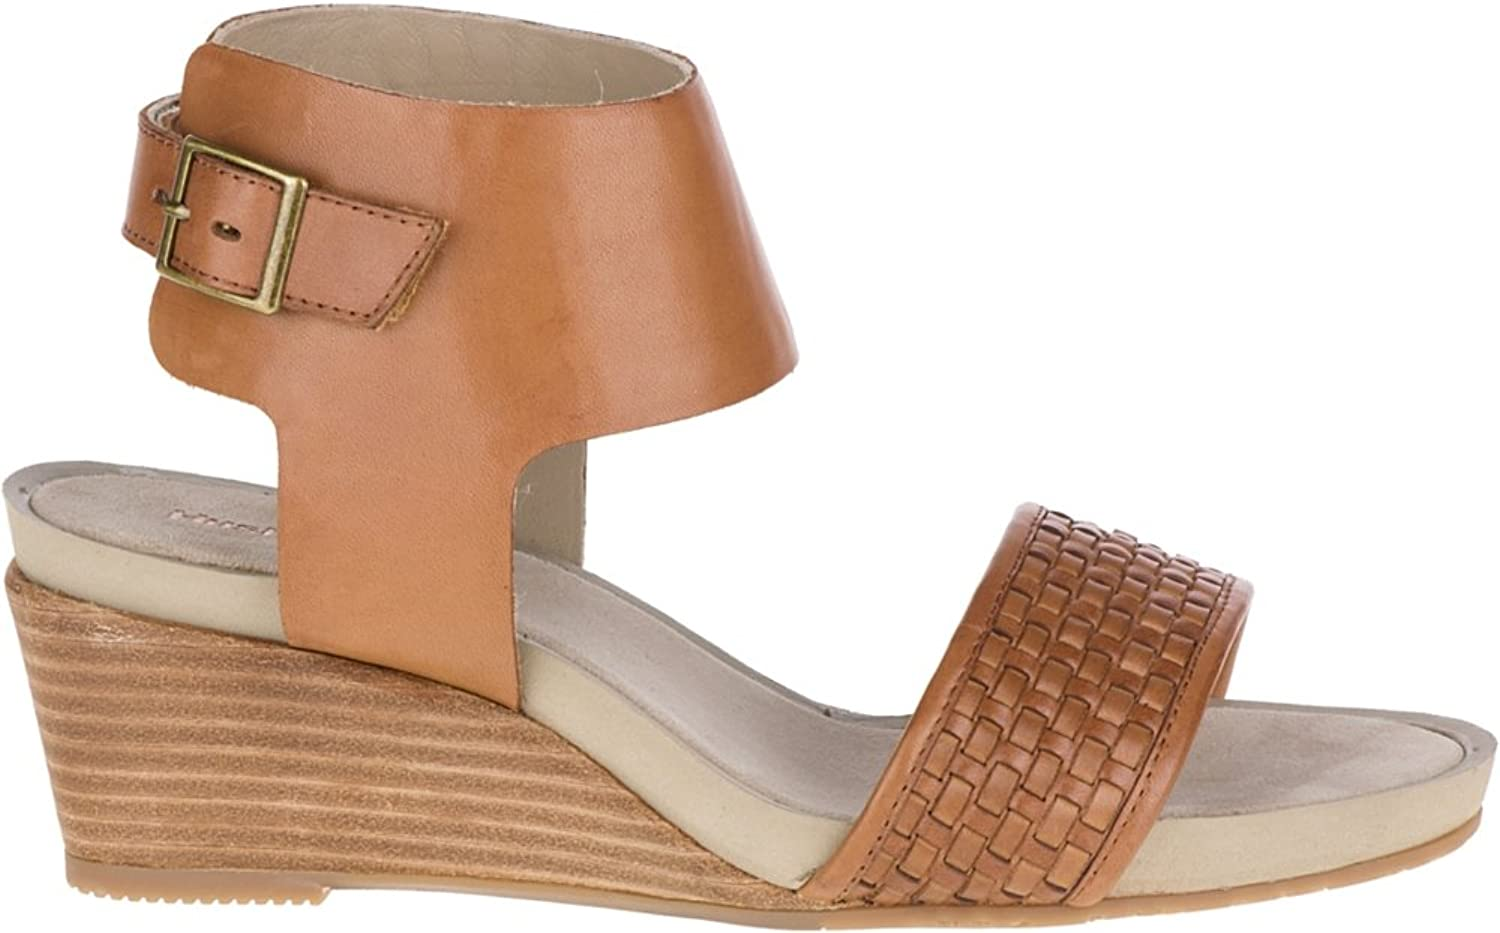 Hush Puppies Womens jelliane Cassale Open Toe Casual Ankle Strap Sandals